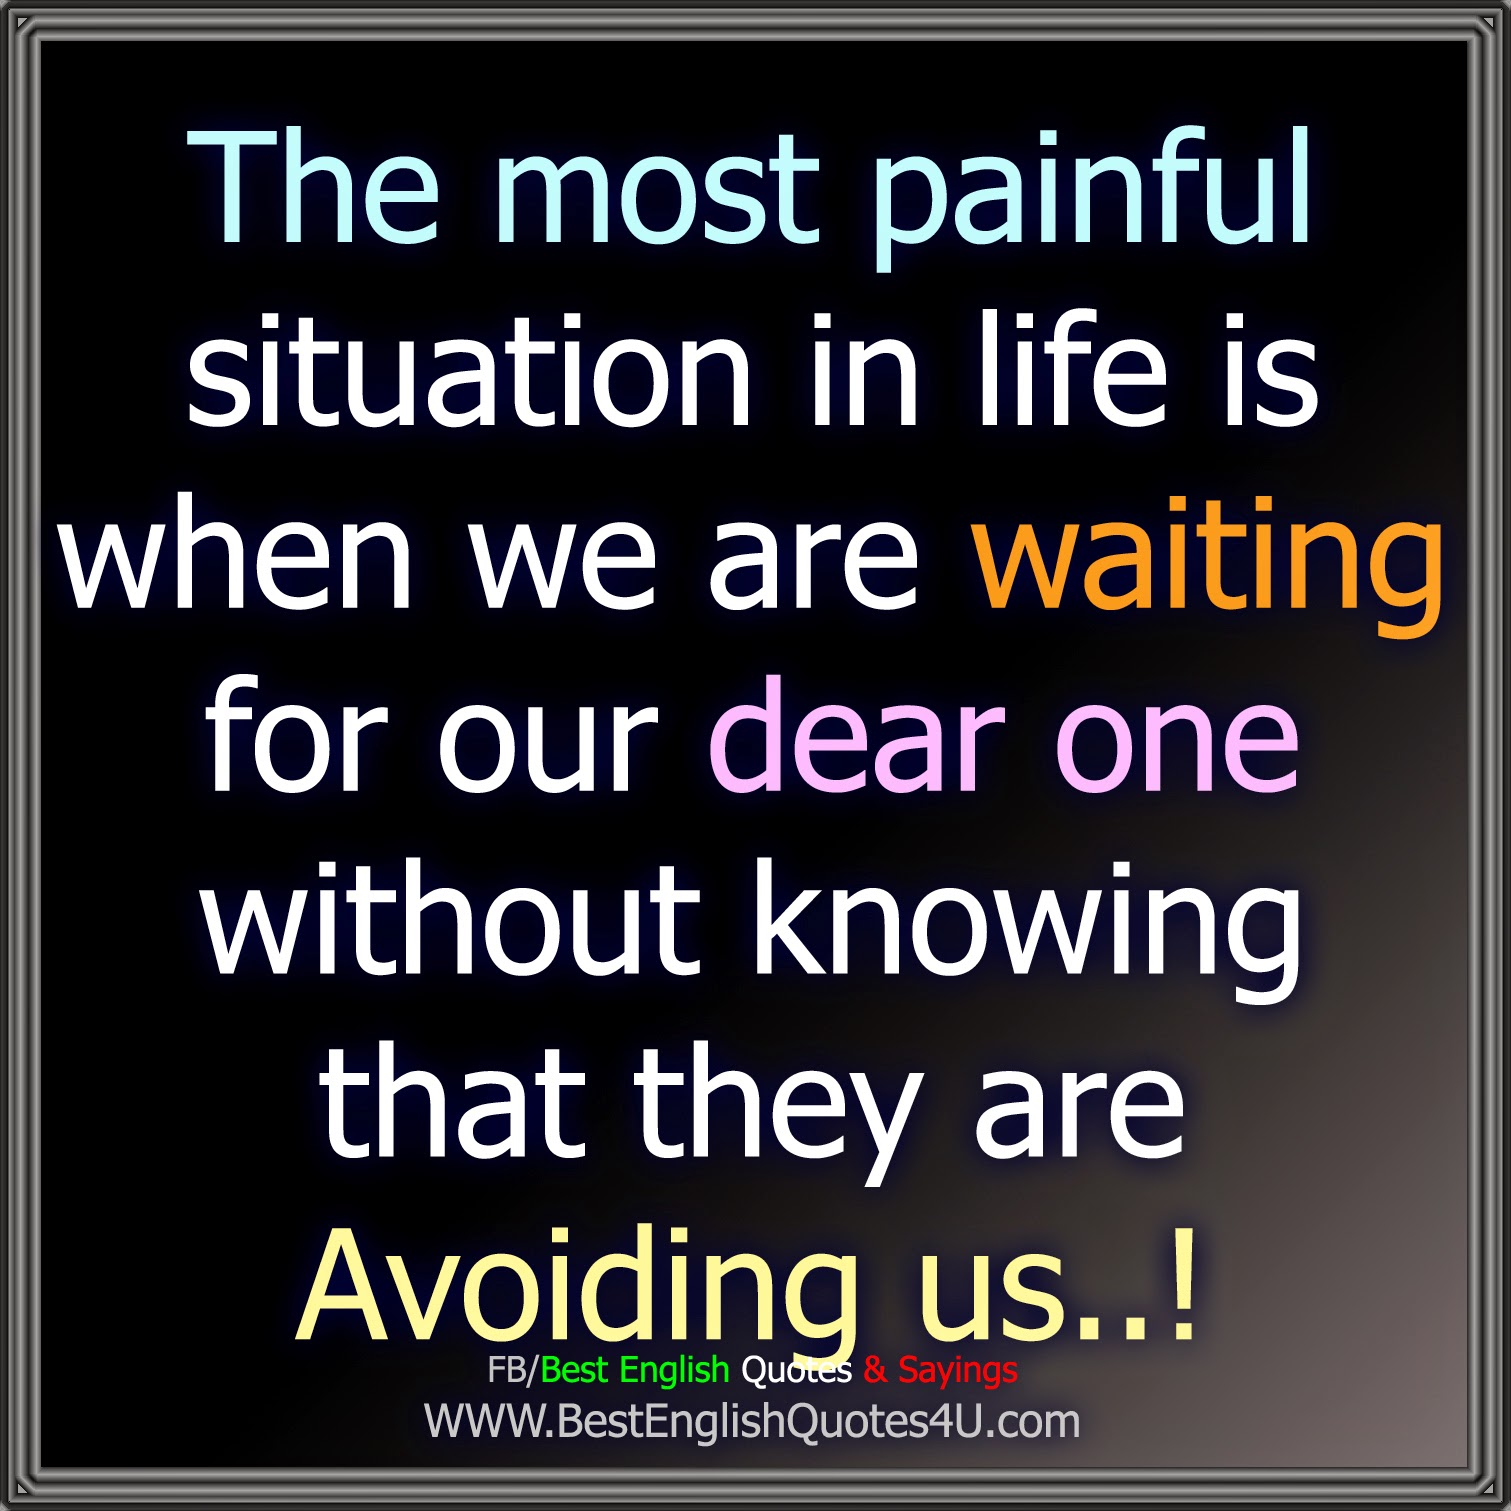 The Most Painful Situation In Life Is...